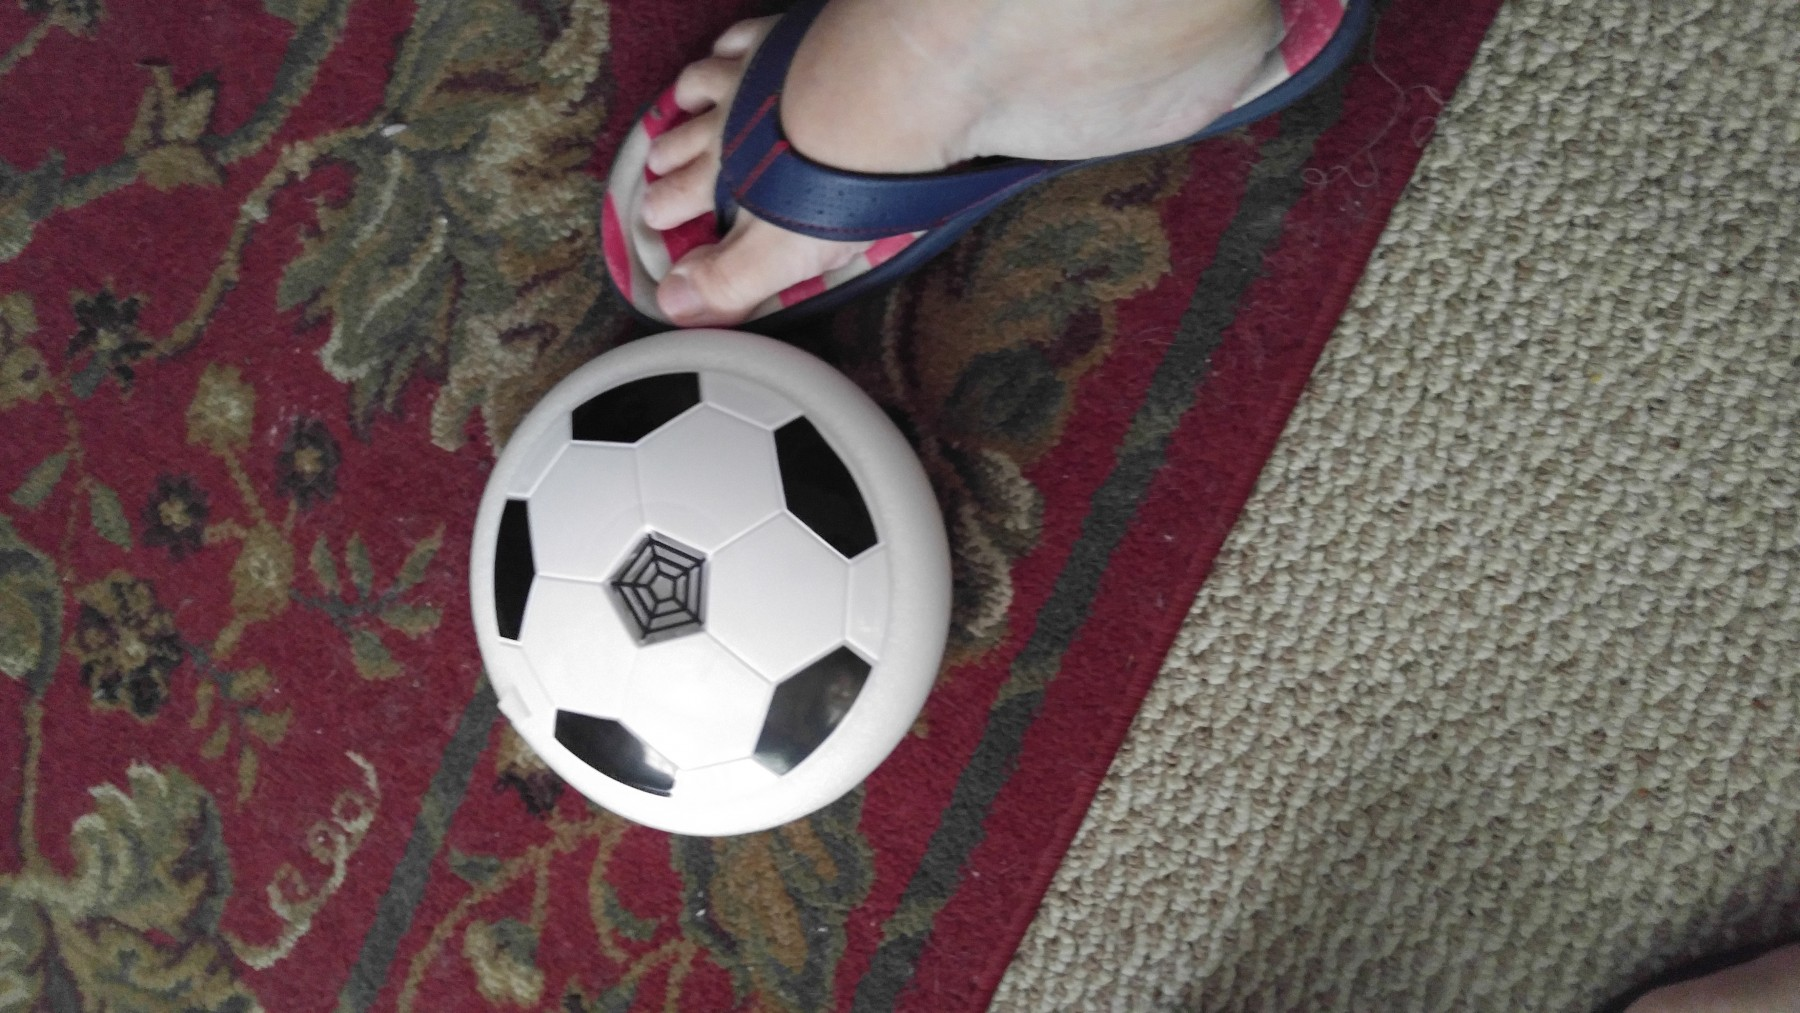 Amazing floating disk air hover ball toy